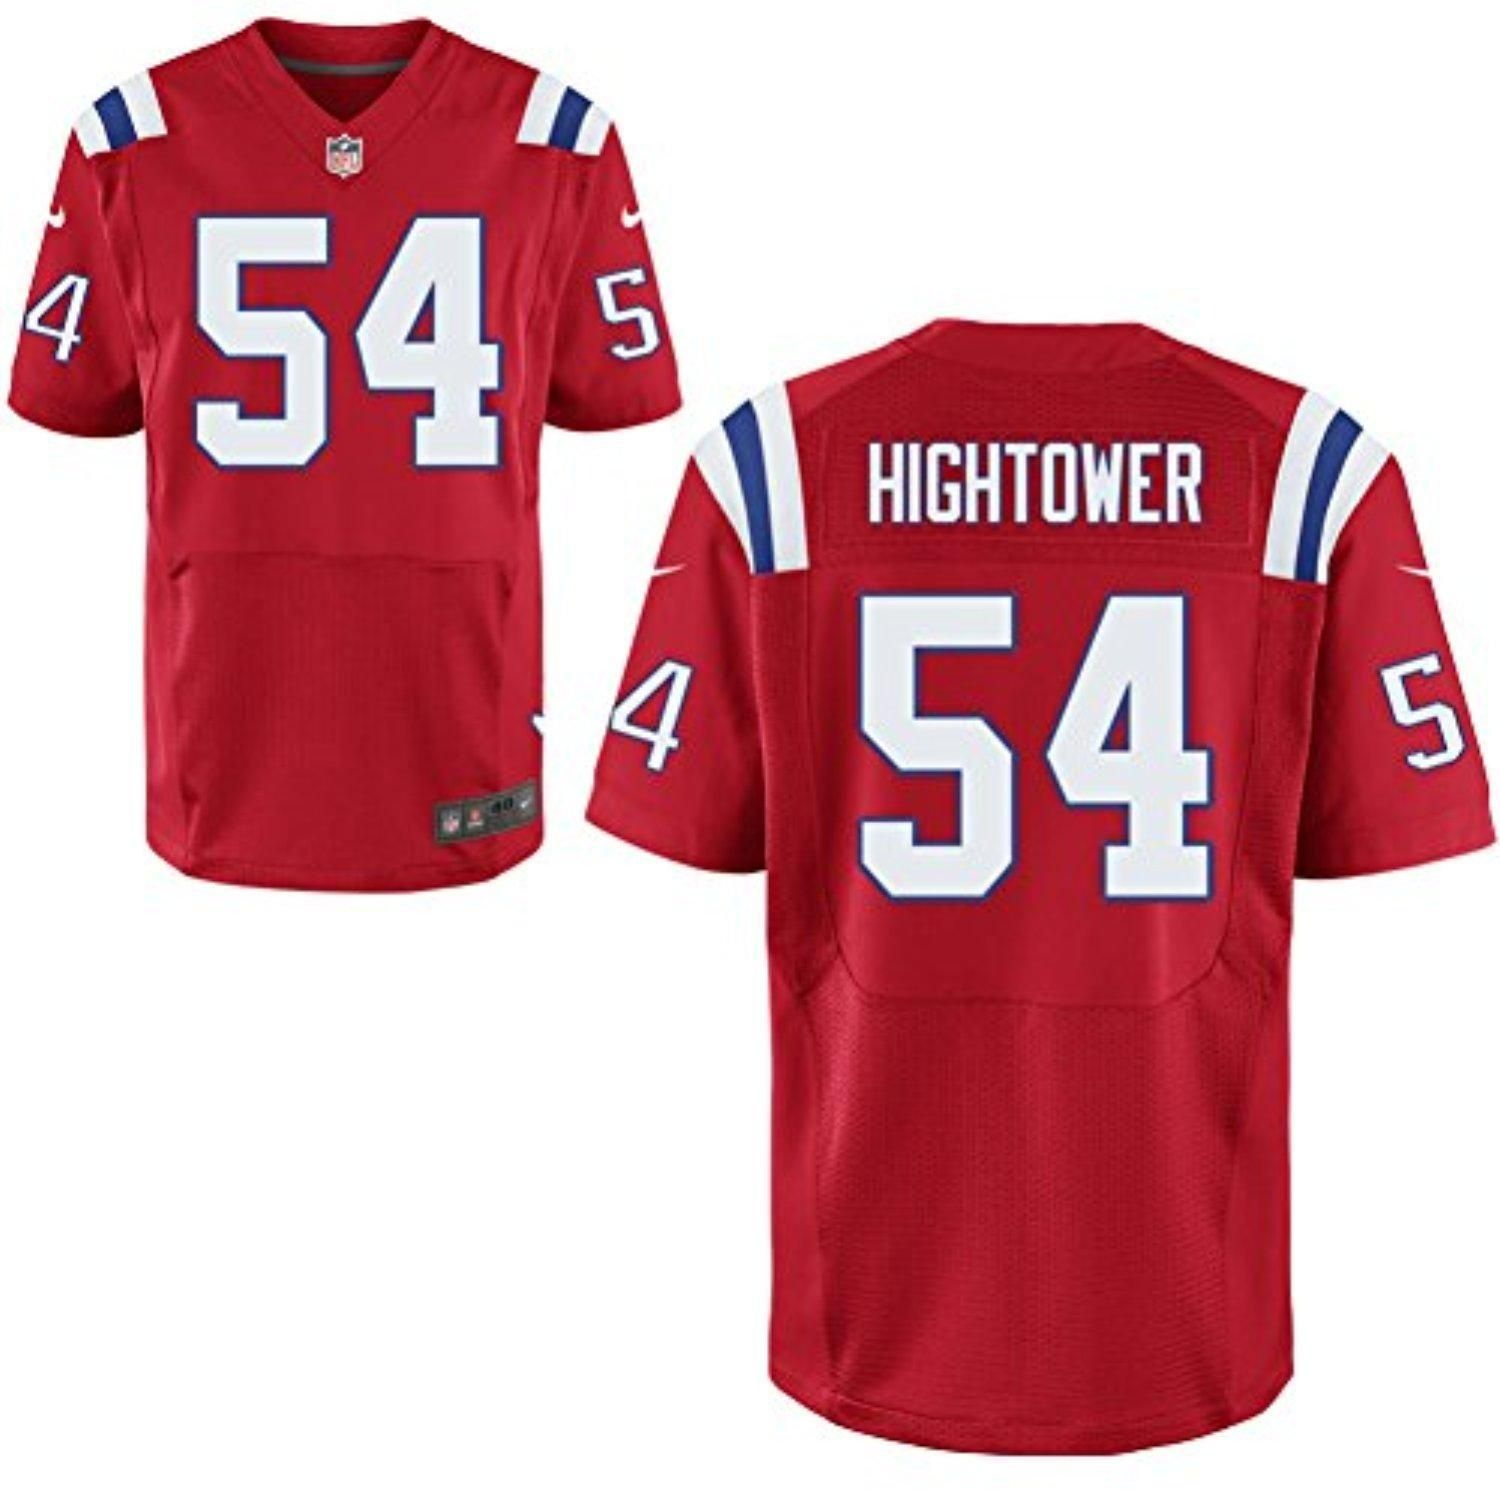 54 Dont A Hightower Jersey Mens American Football Jerseys Red Size 56 Brought To You By Avarsha Com Americana